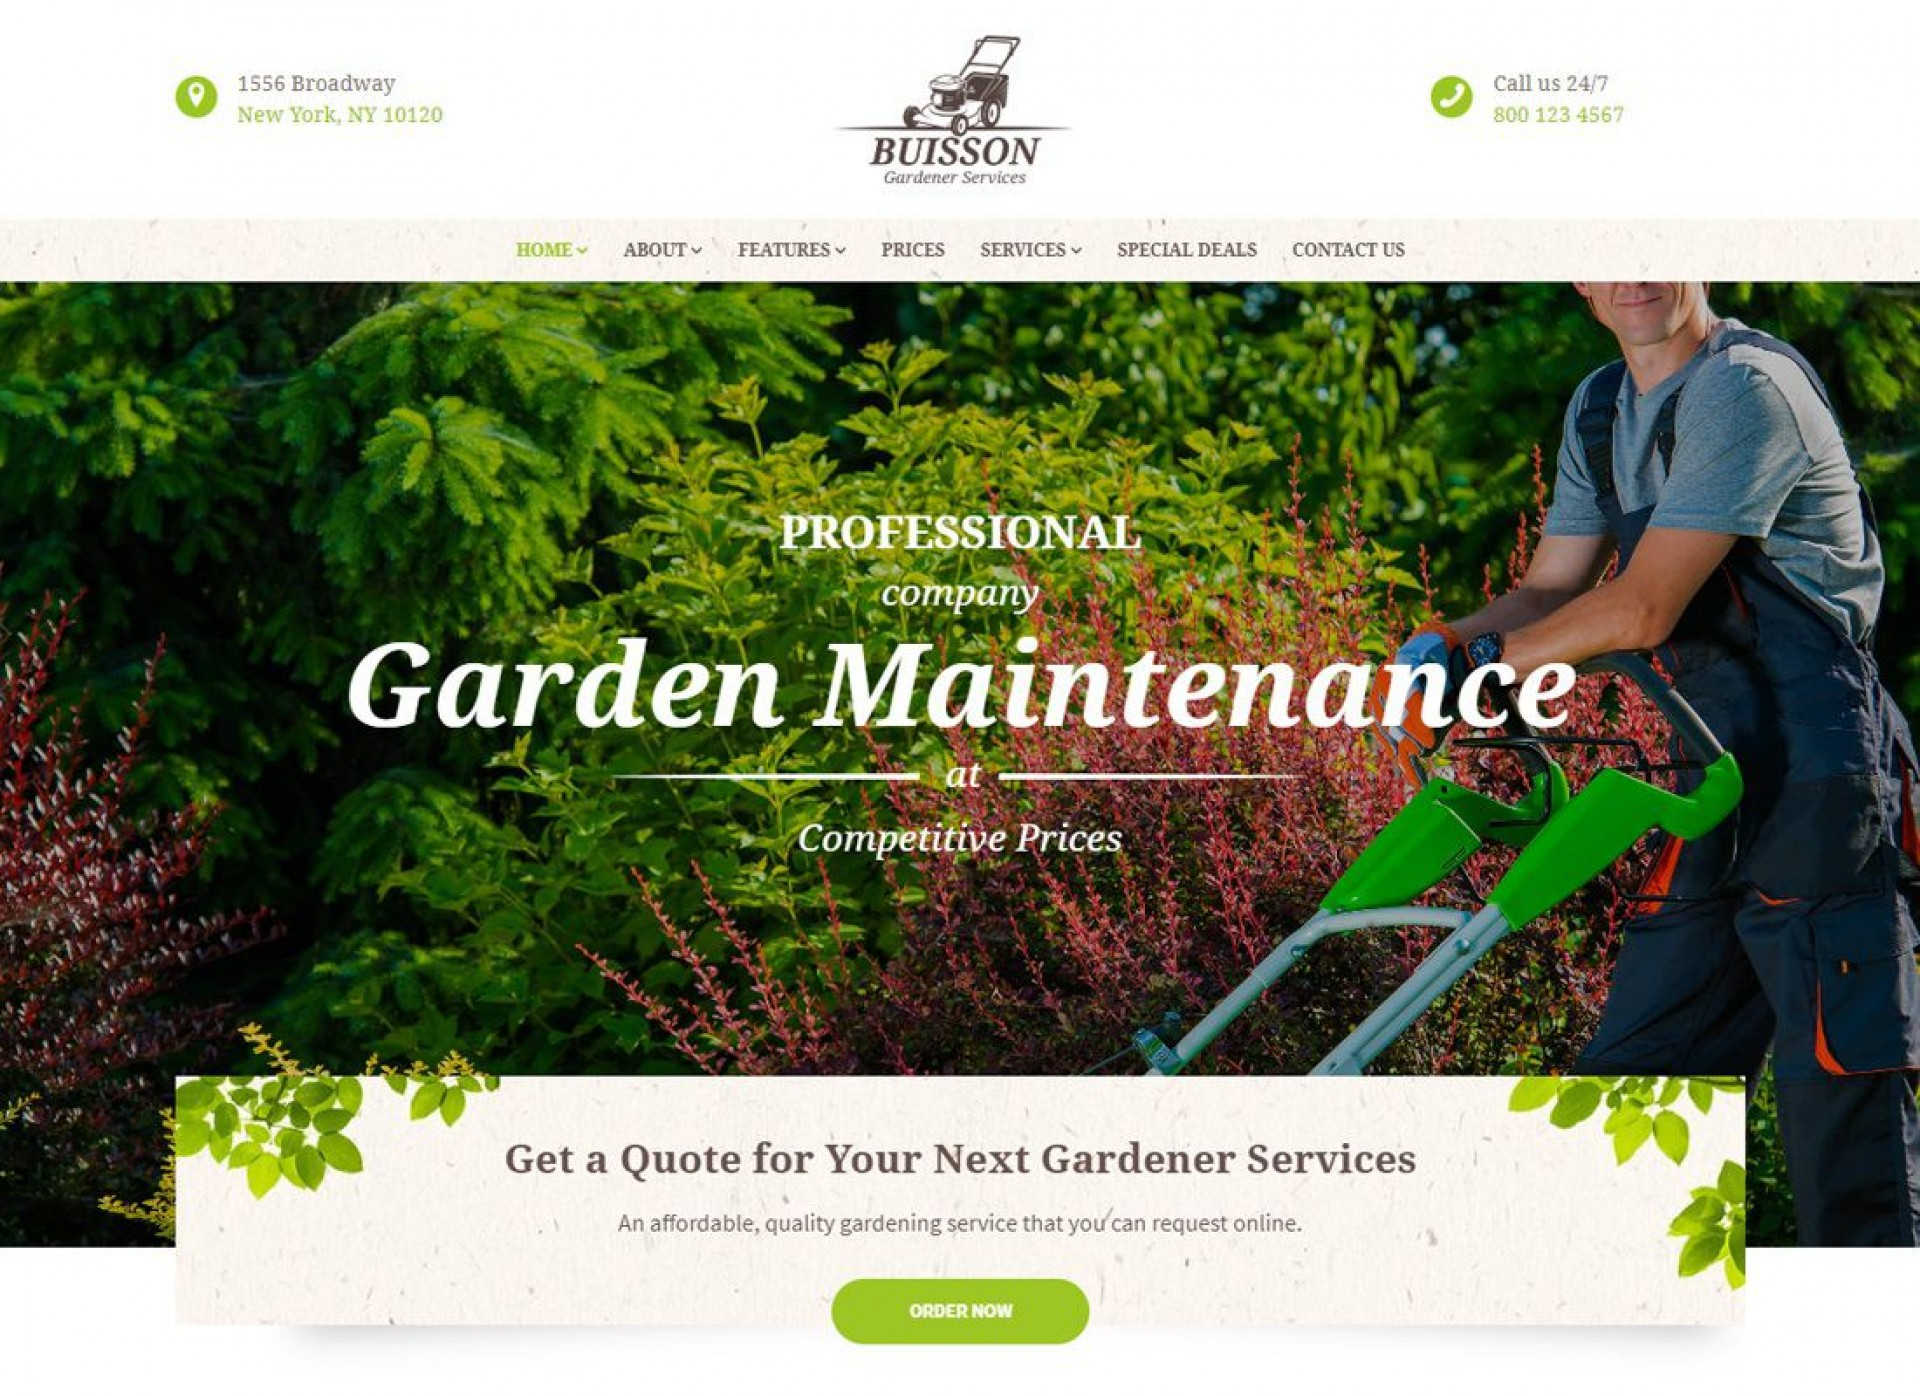 004 Archaicawful Lawn Care Website Template Picture 1920